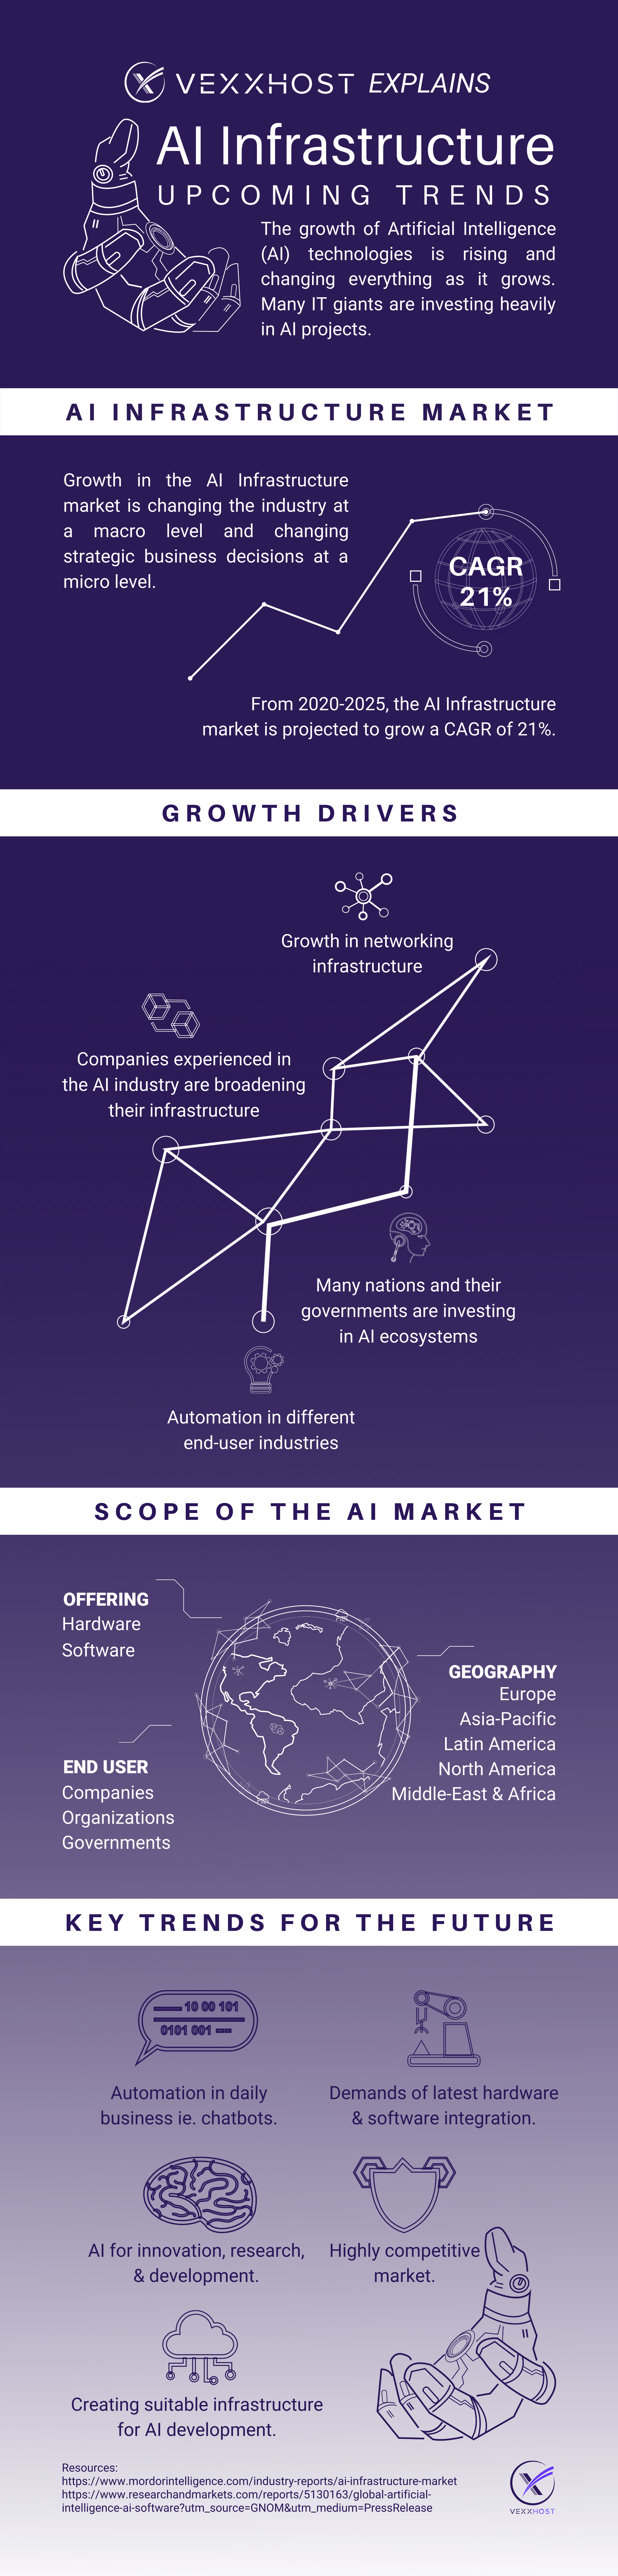 AI Infrastructure Market_ Upcoming Trends_Infographic